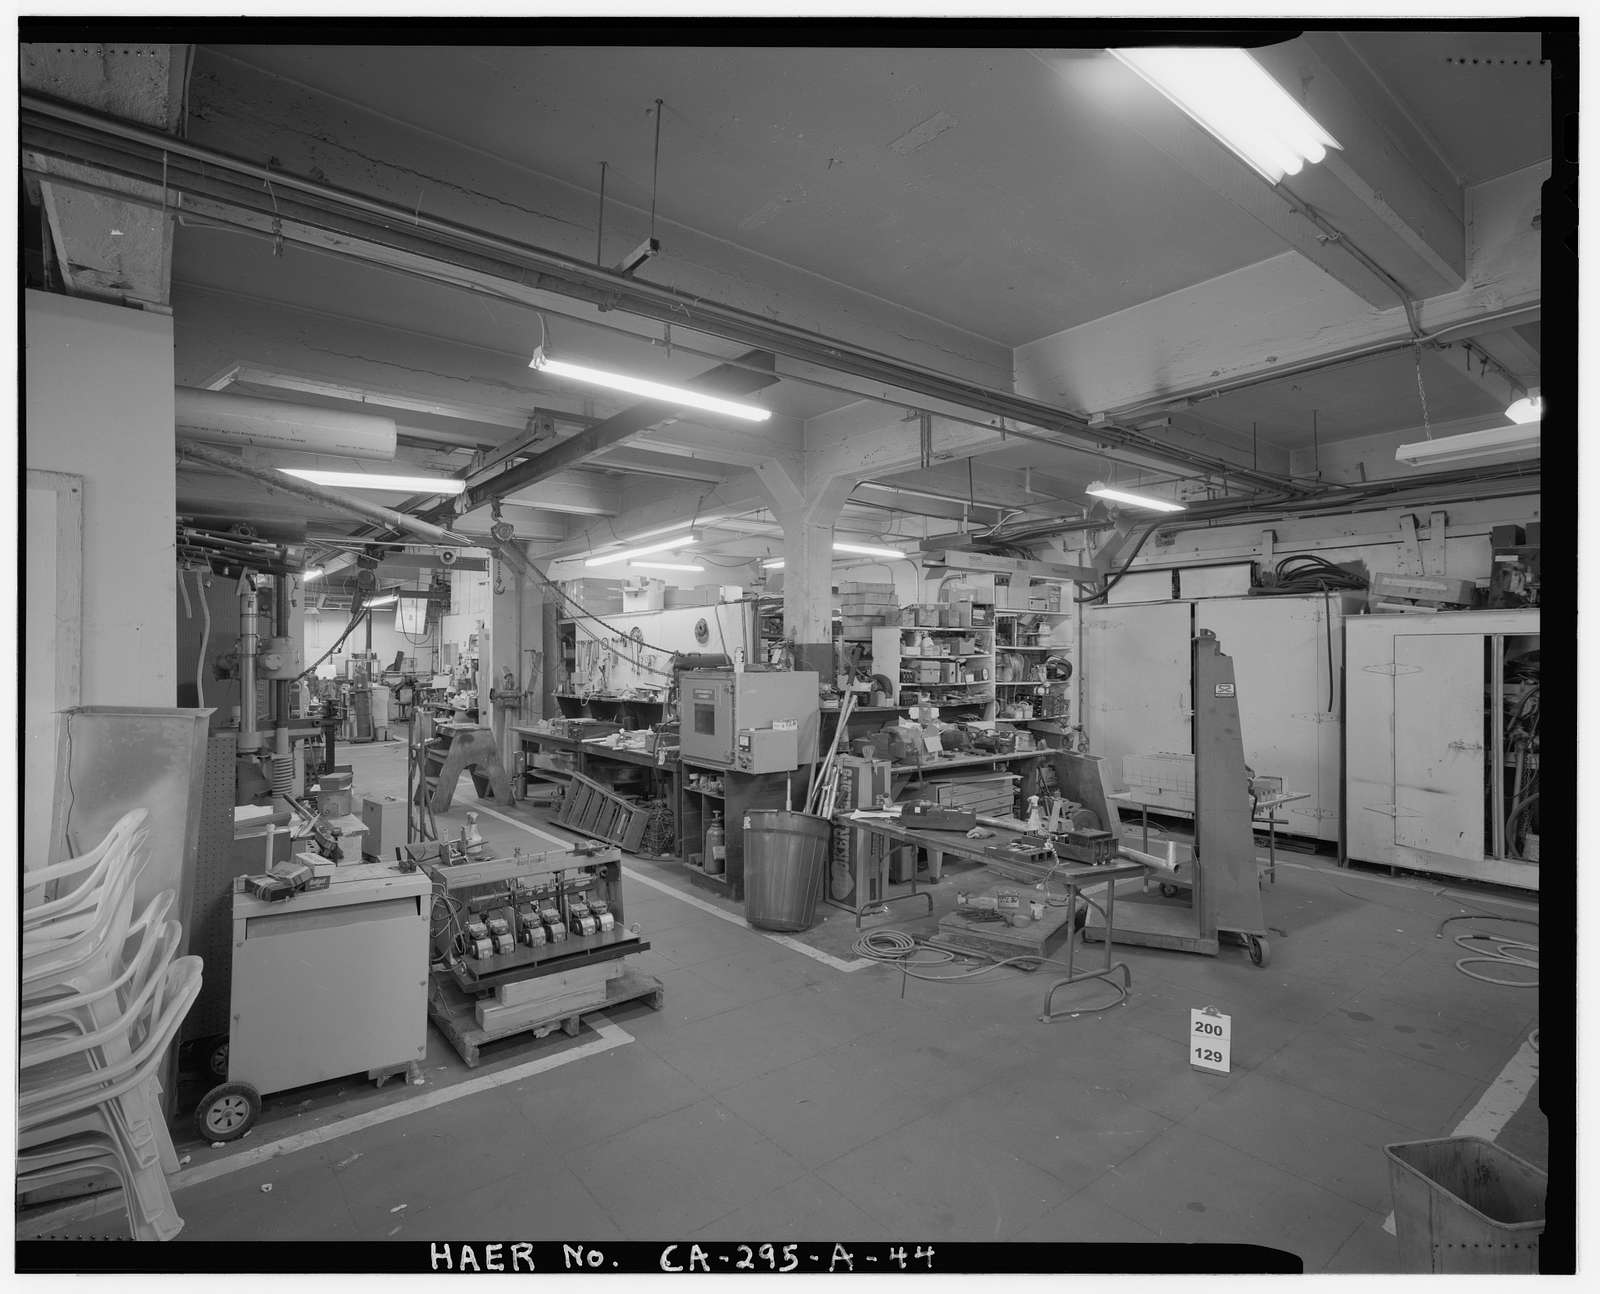 United Engineering Company Shipyard, Inspection & Repair Shops, 2900 Main Street, Alameda, Alameda County, CA